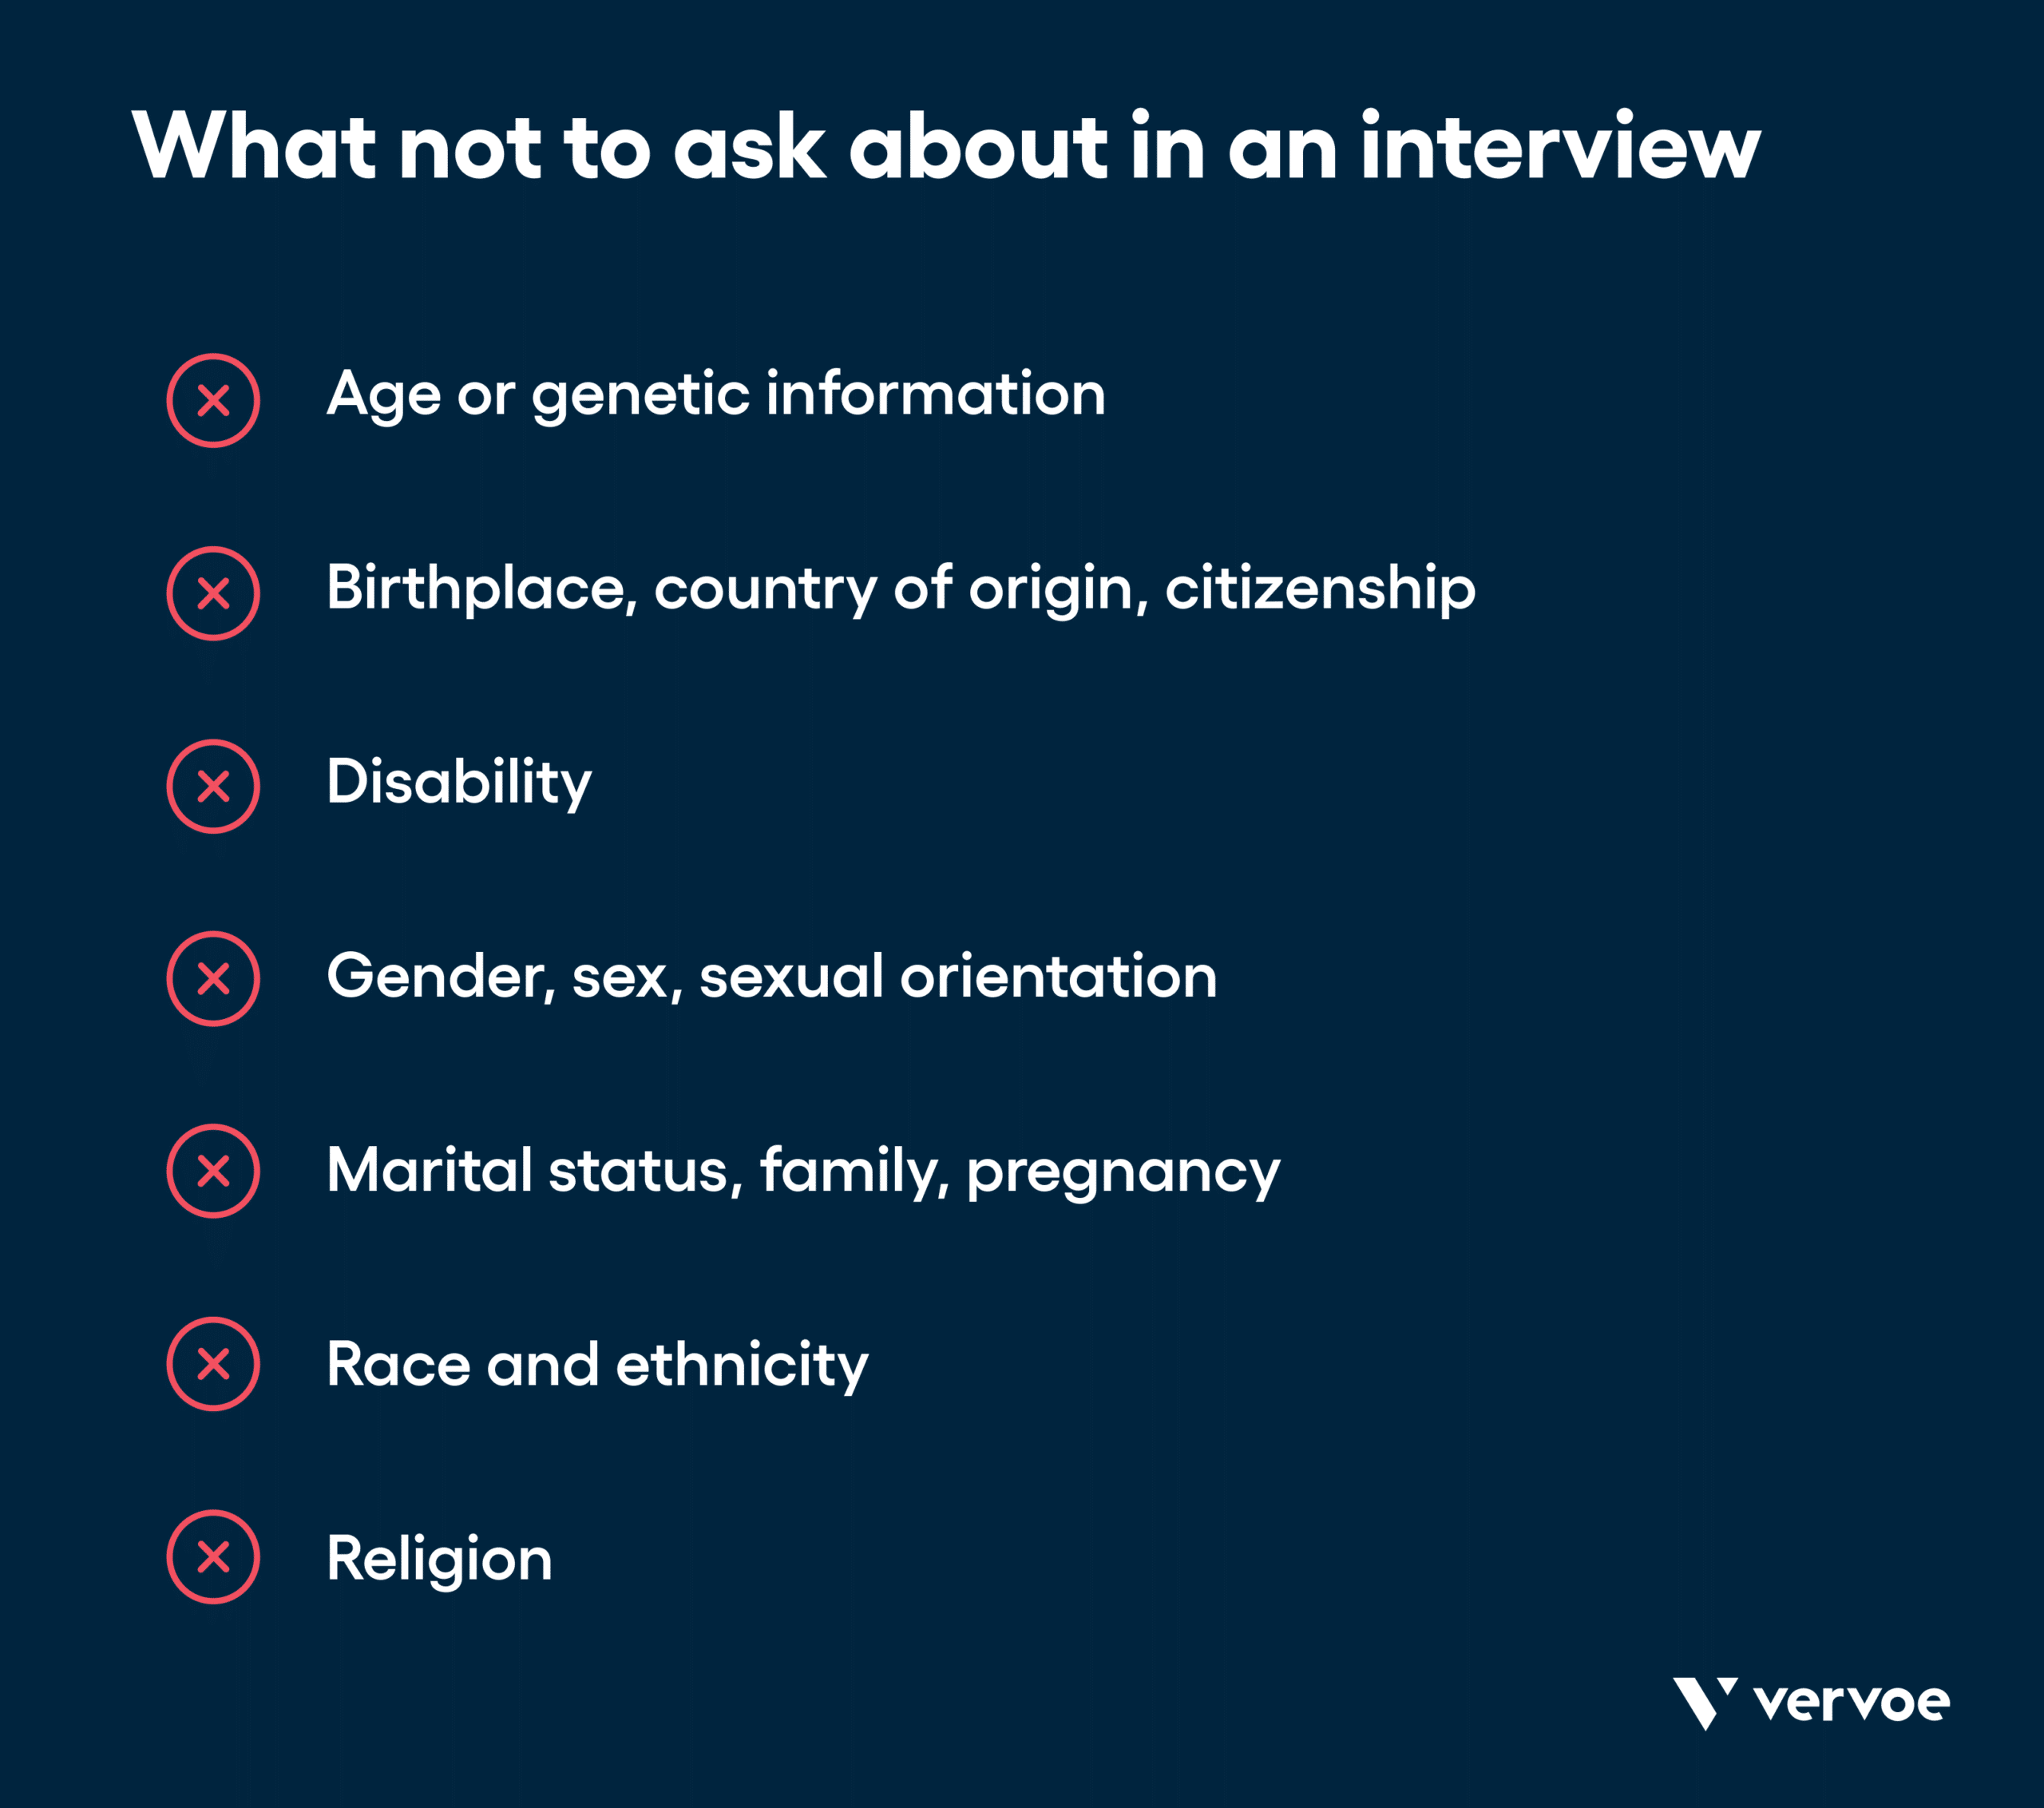 Infographic showing what not to ask in an interview